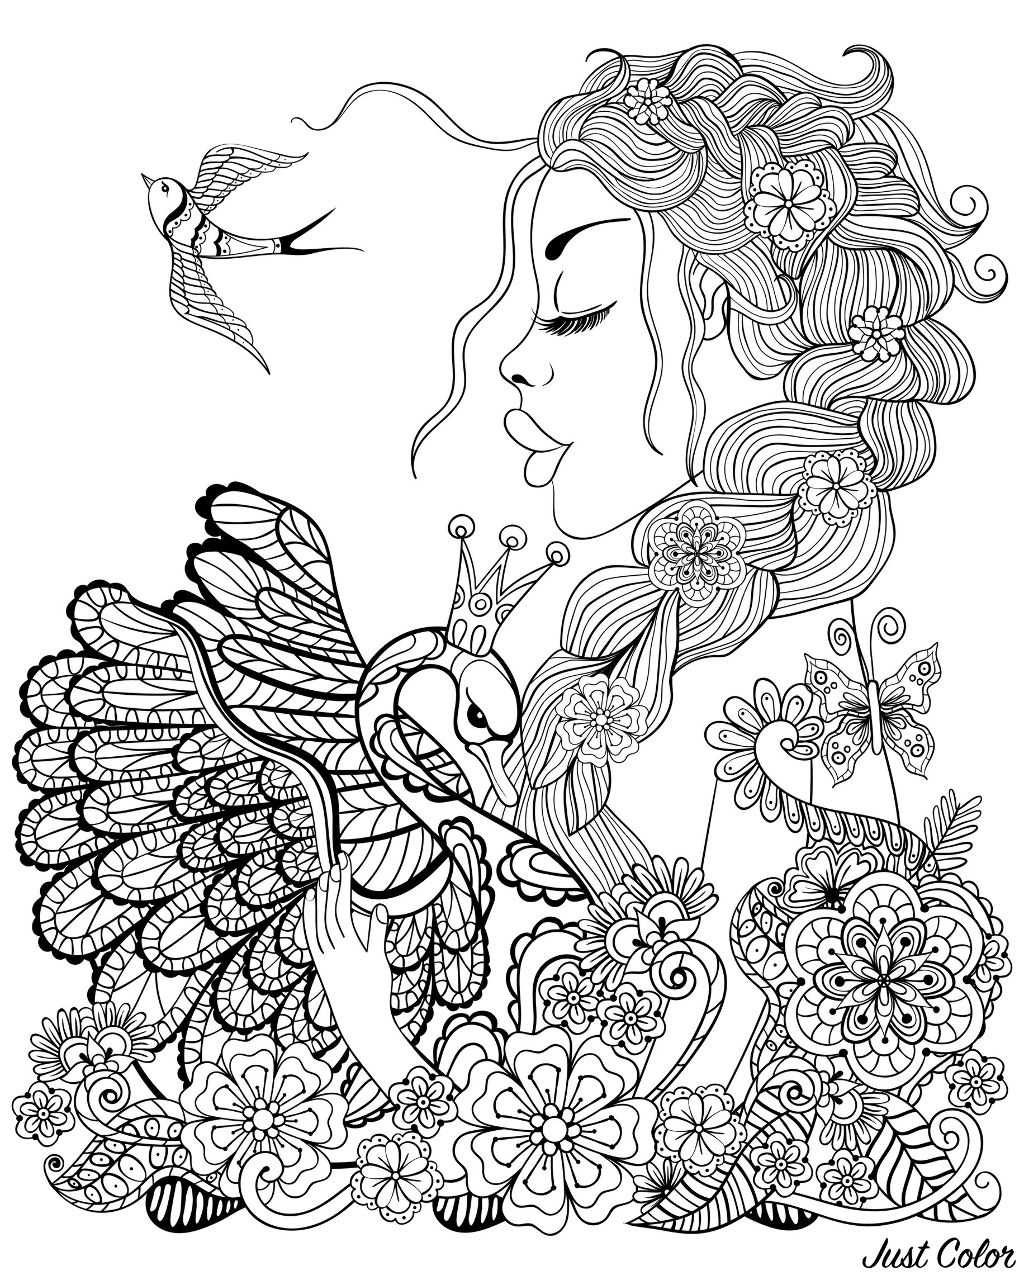 Forest fairy with wreath on head hugging swan, with flowers and leaves